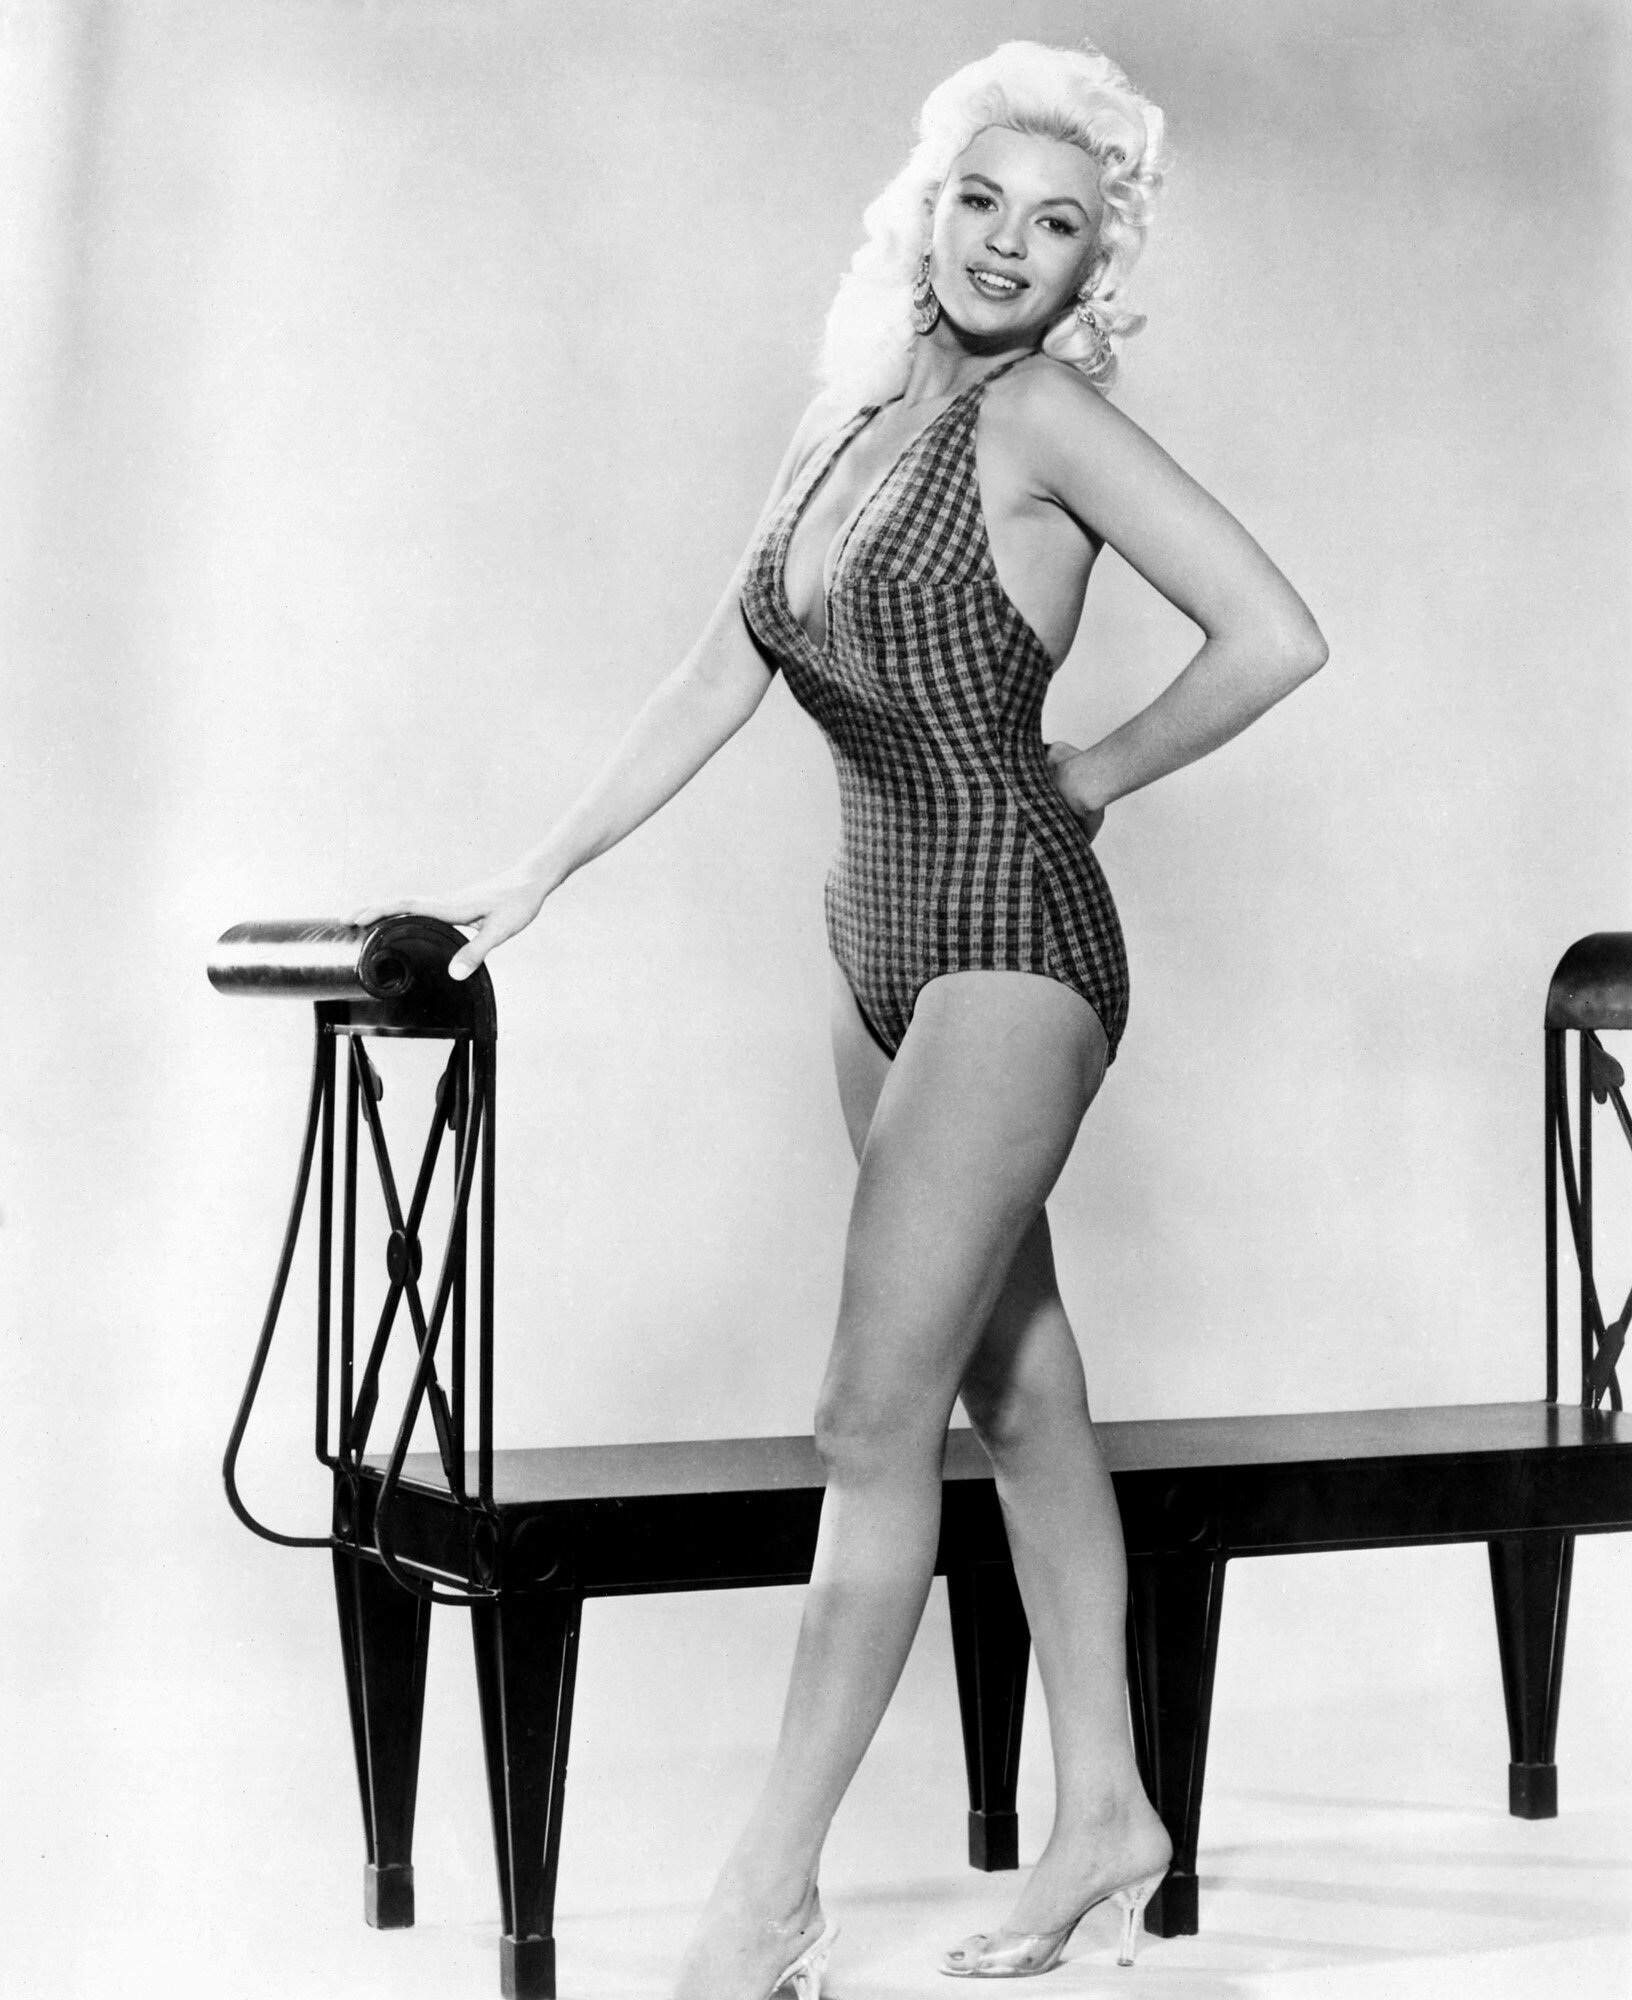 jayne_swimsuit_carreau-studio-1-1